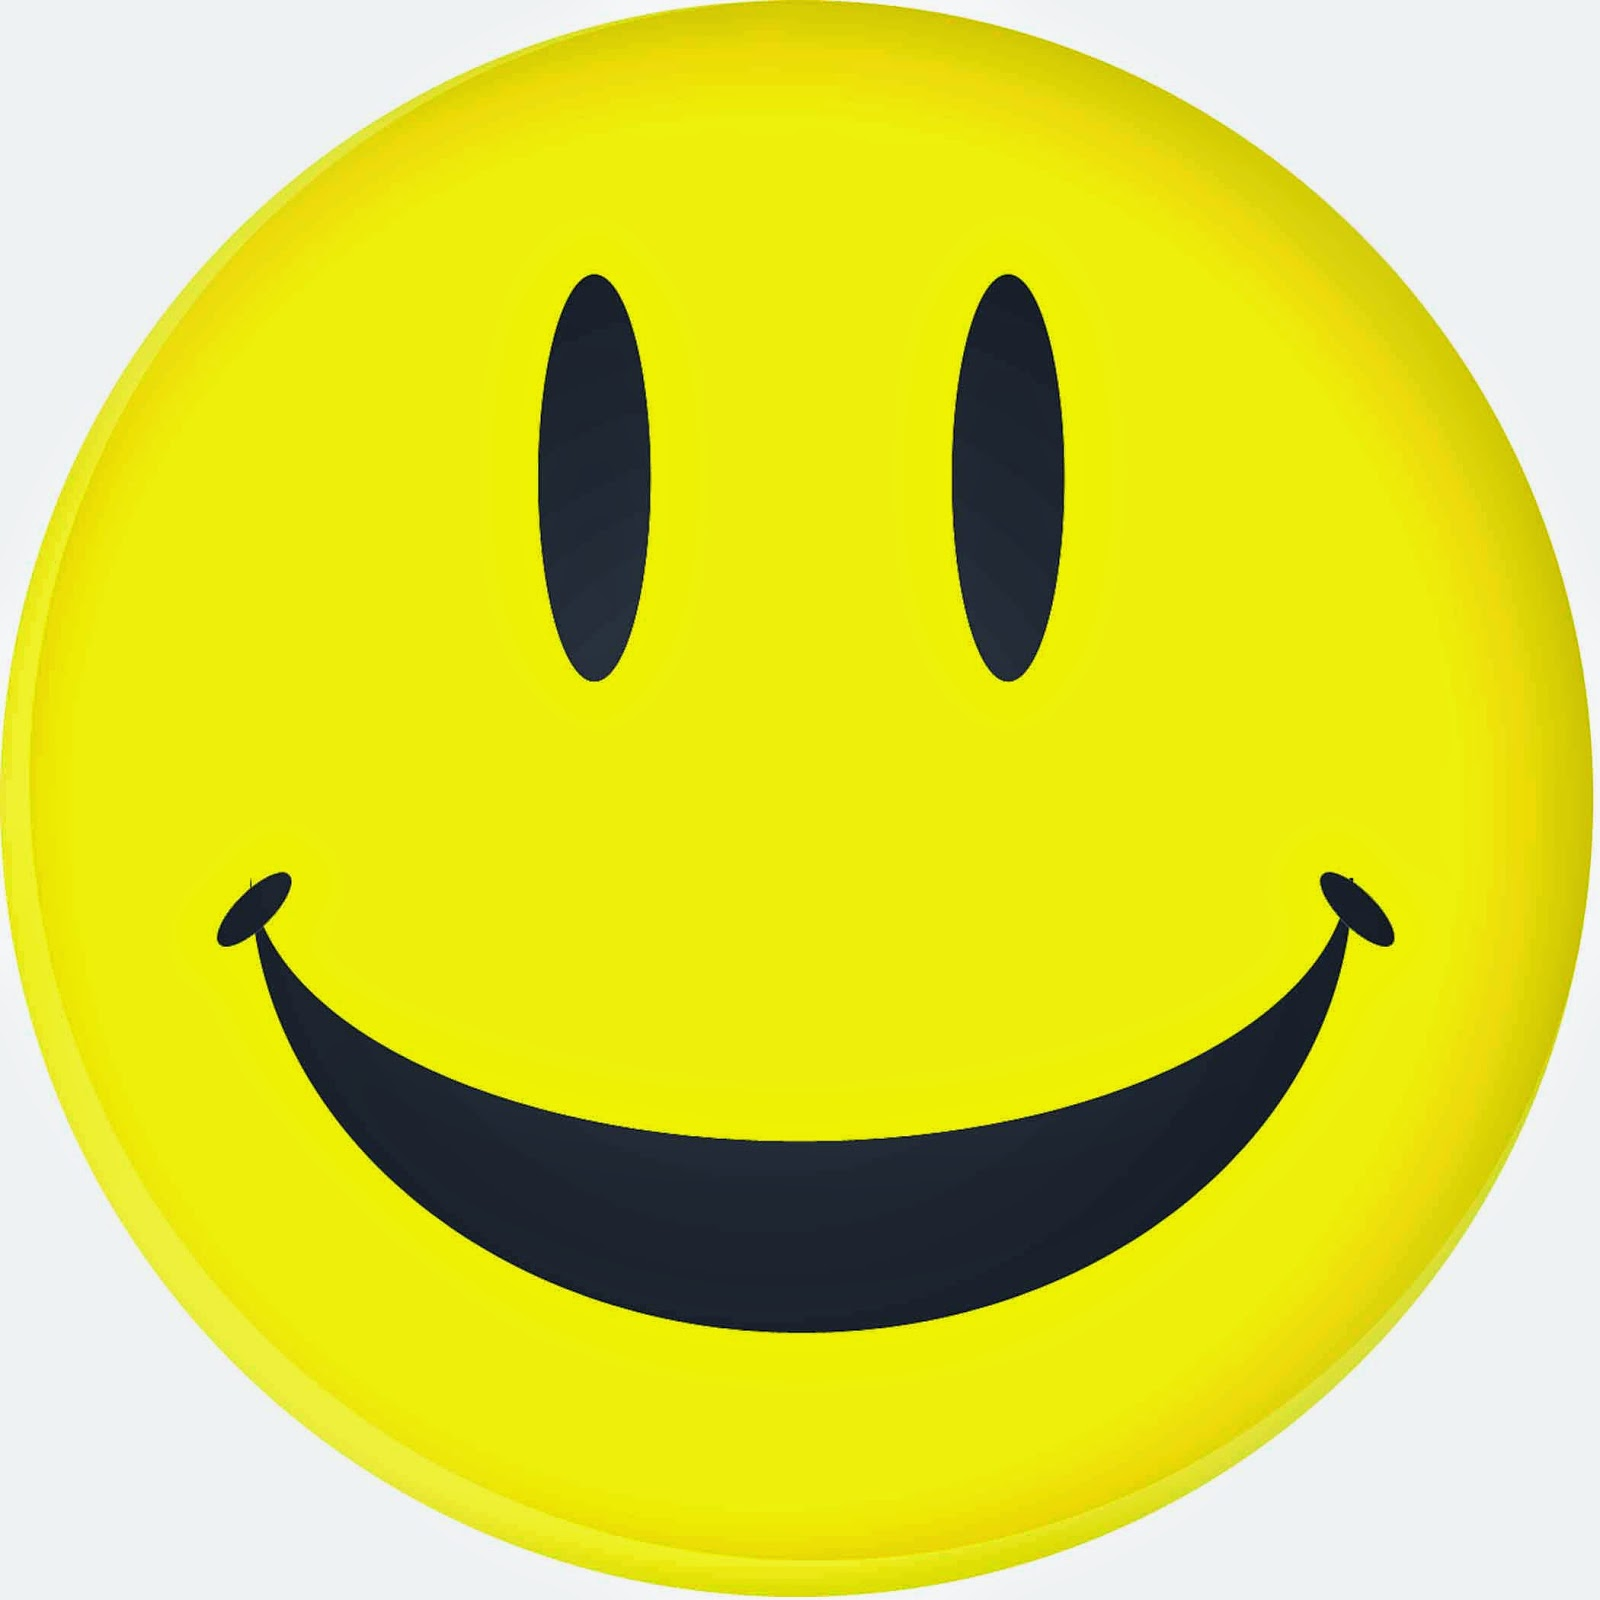 Email smiley faces clipart transparent How to insert smiley faces in Outlook email message? transparent